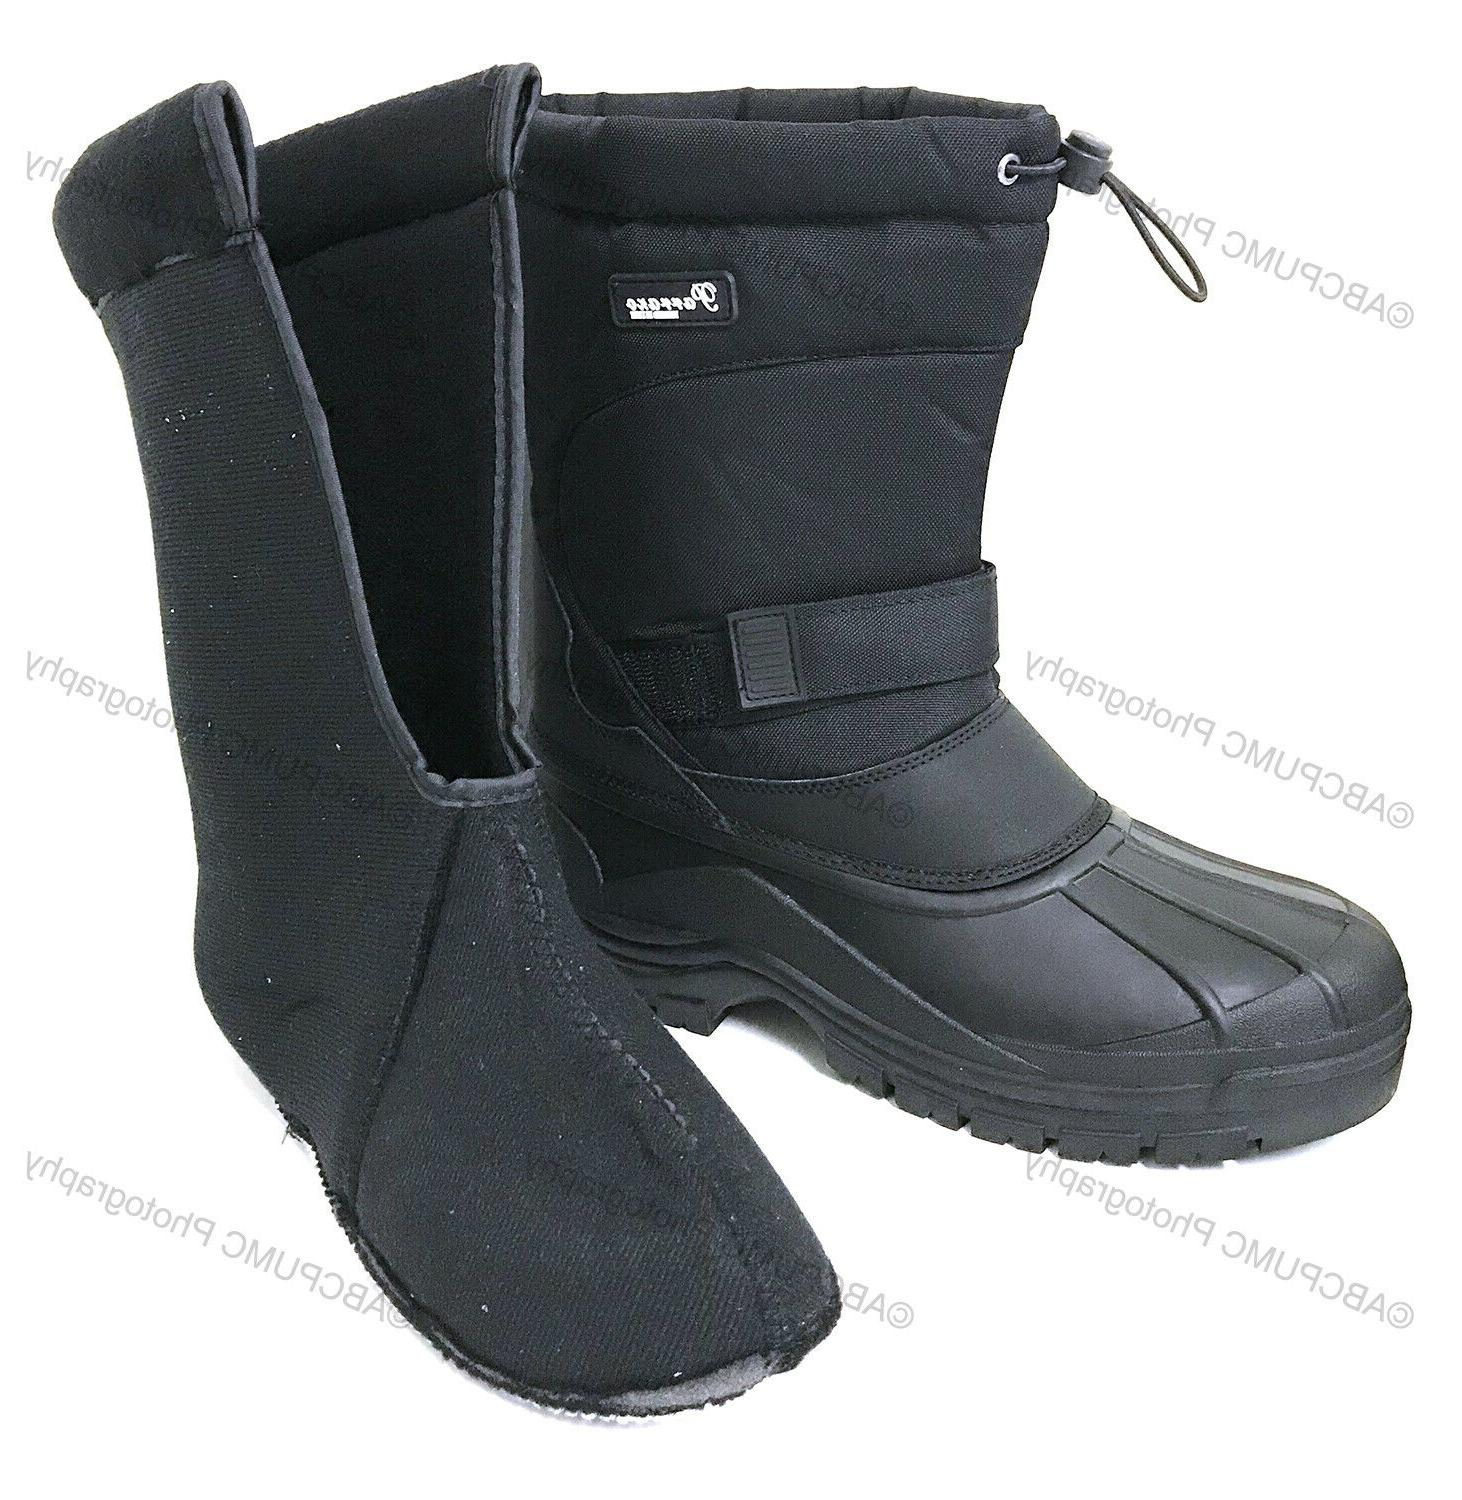 Waterproof Thermolite Shoes